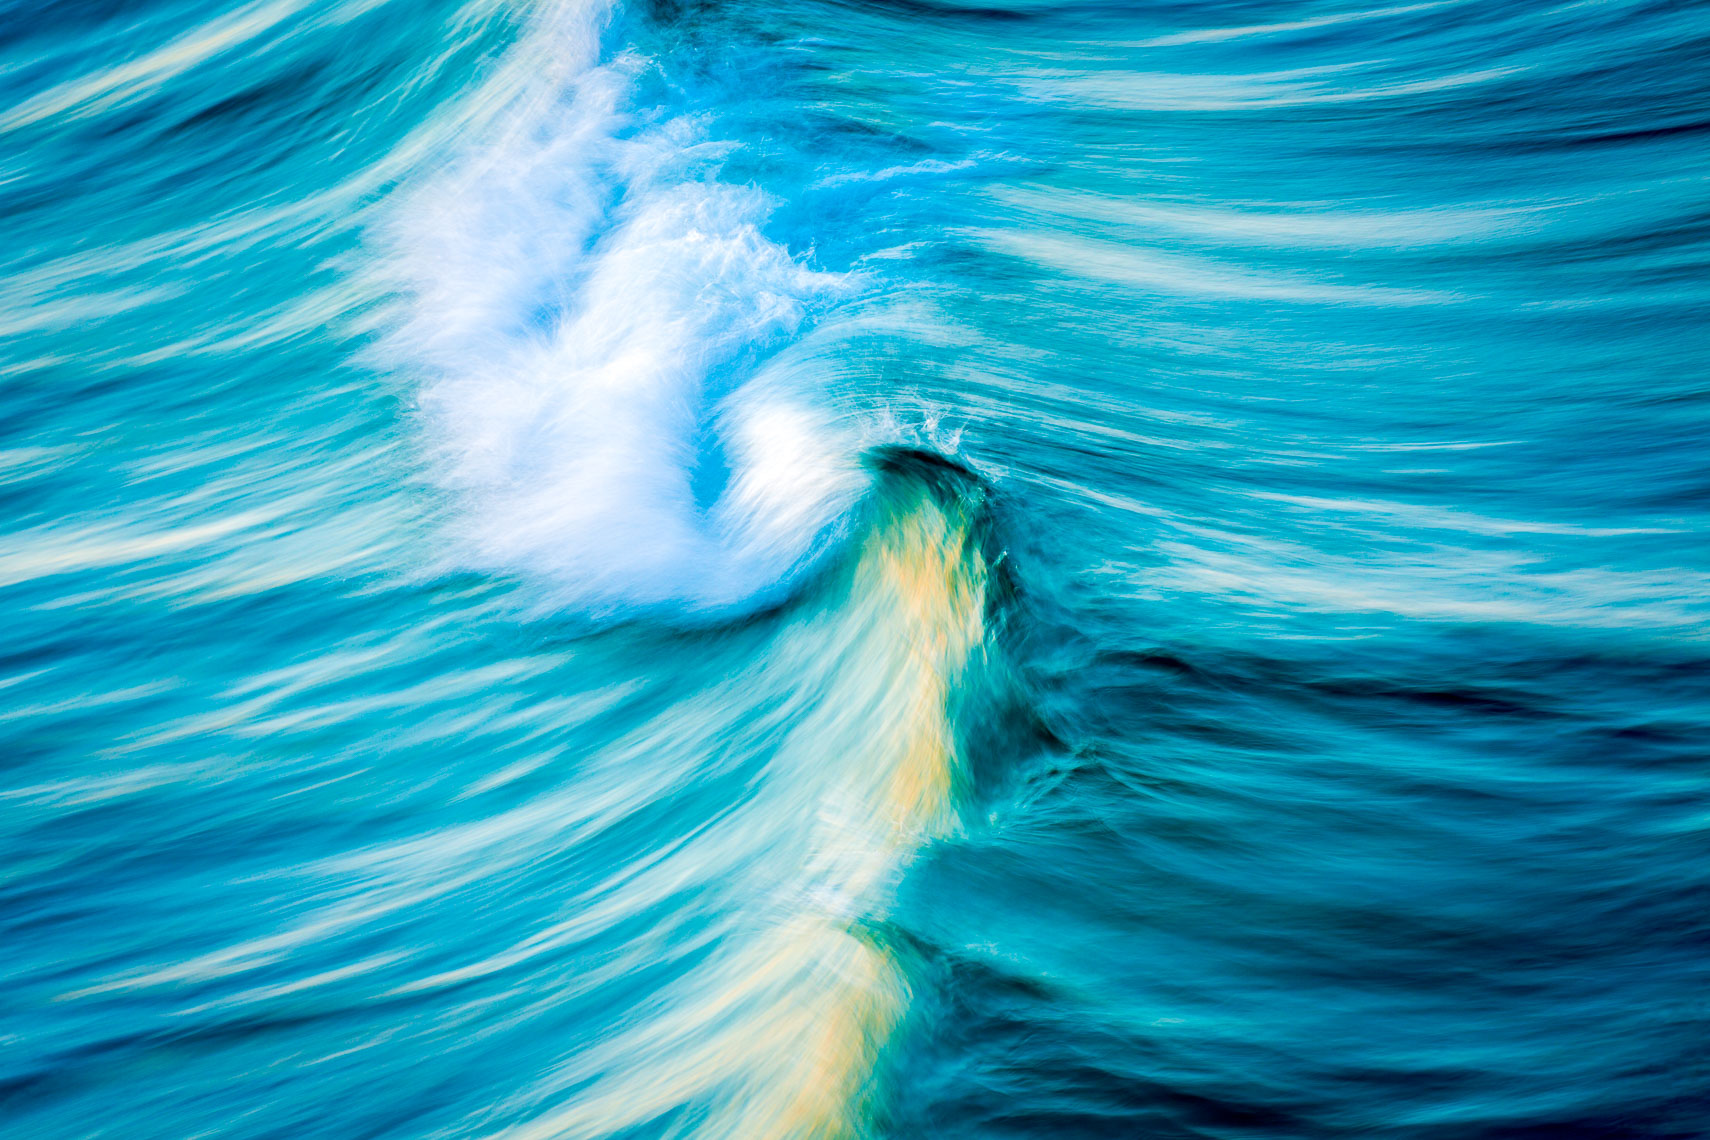 Waves-Art-078-170501